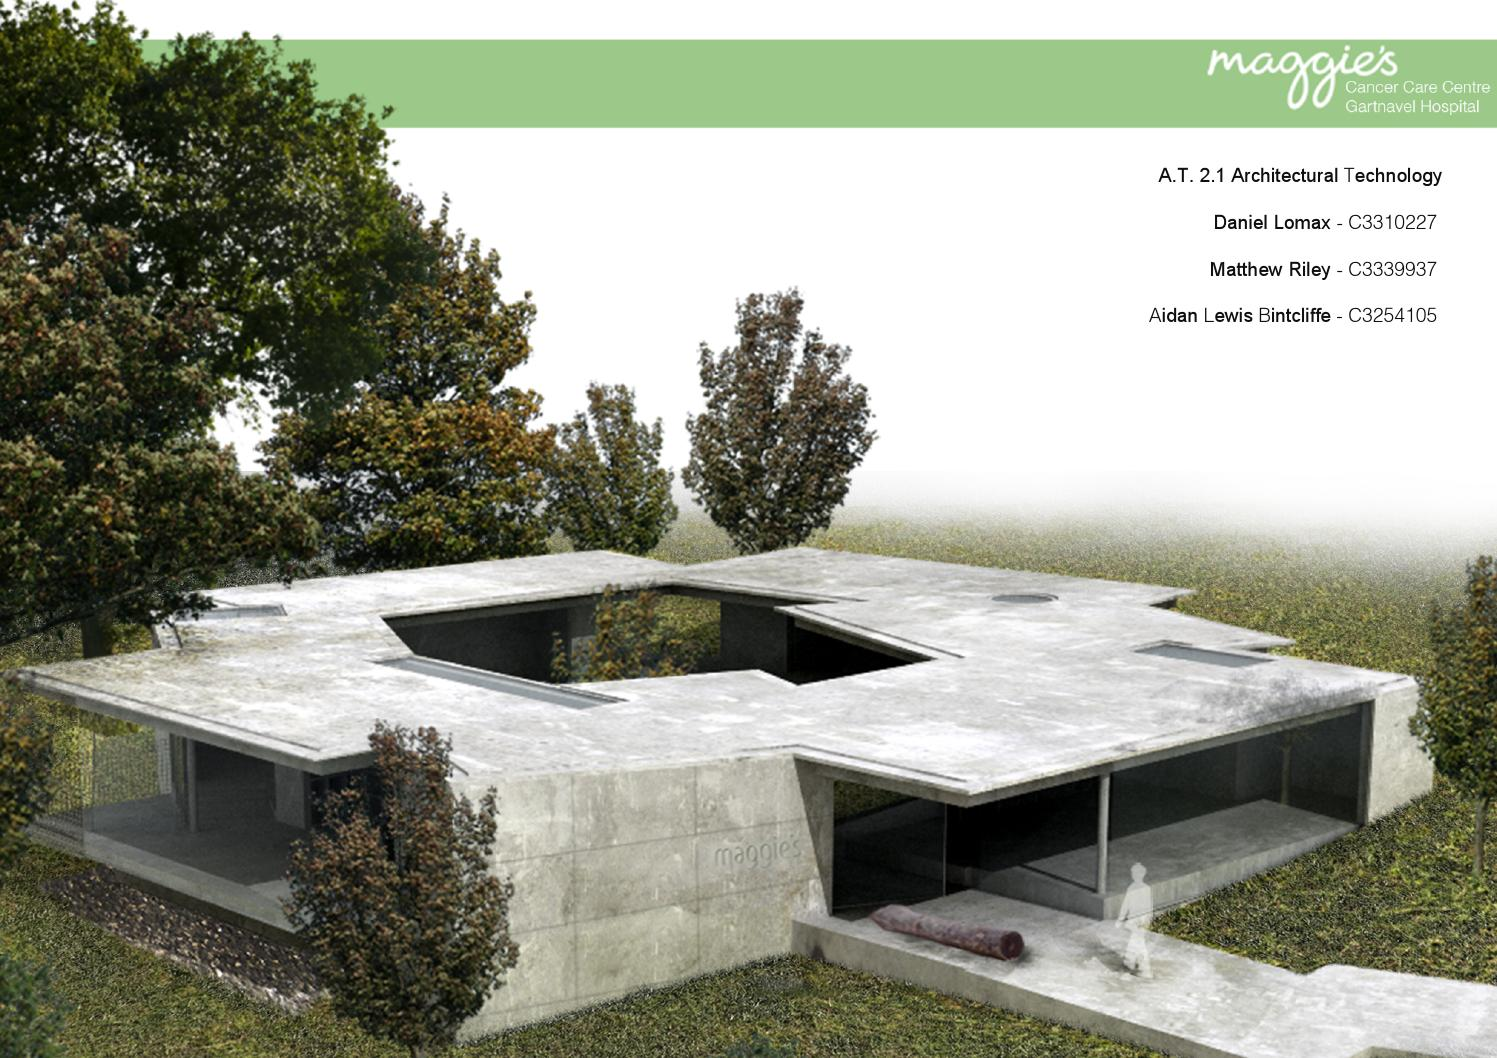 Architectural Technology Case Study - Maggie's Centre by